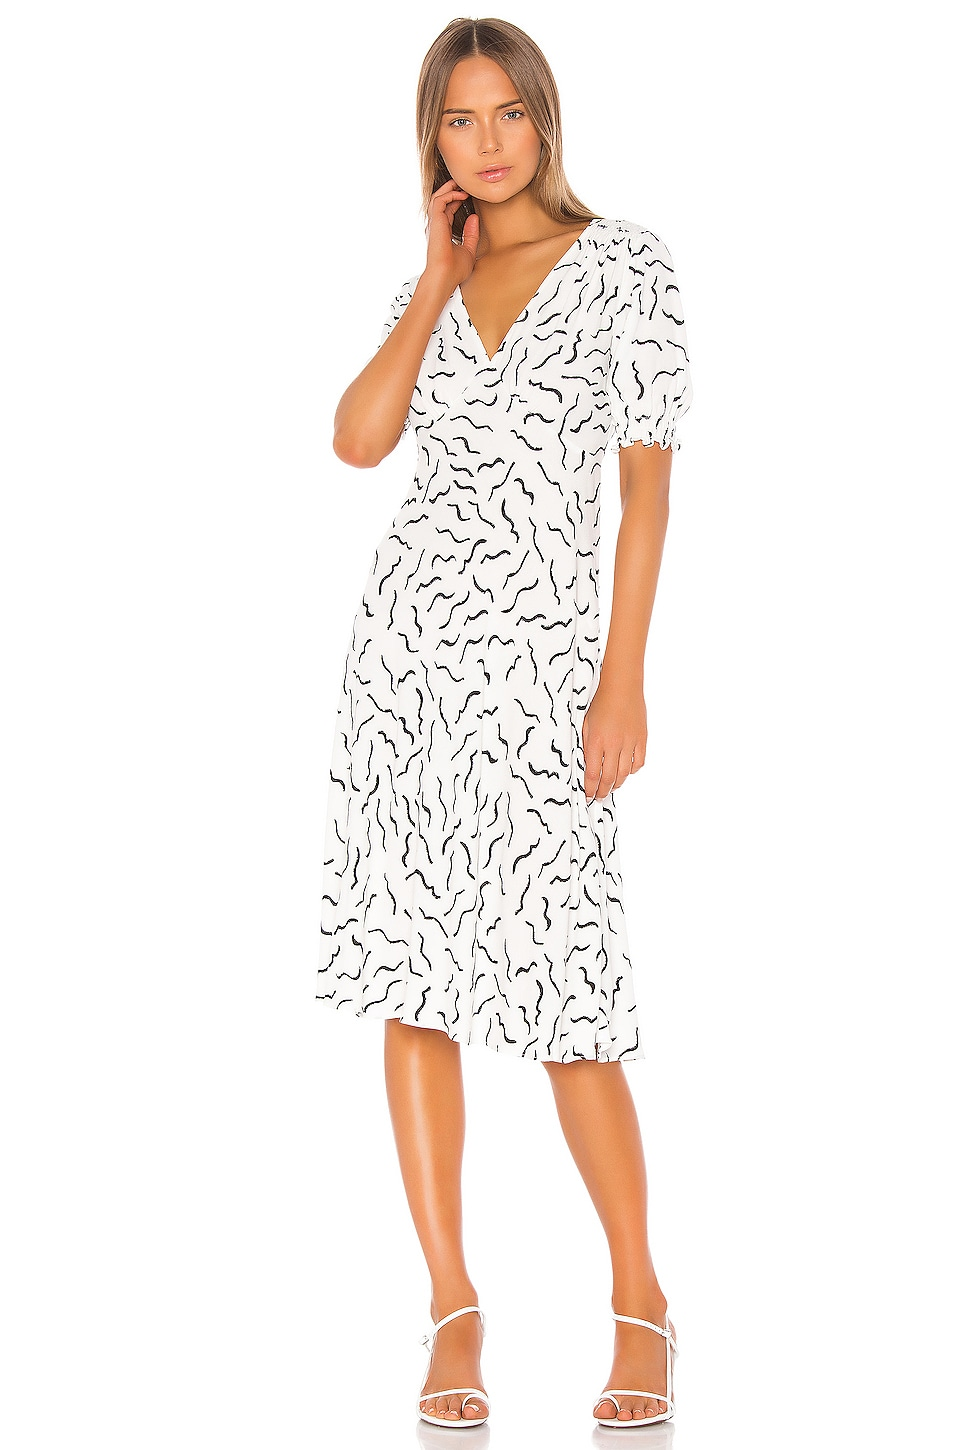 Diane von Furstenberg Jemma Dress in Abstract Lines & White